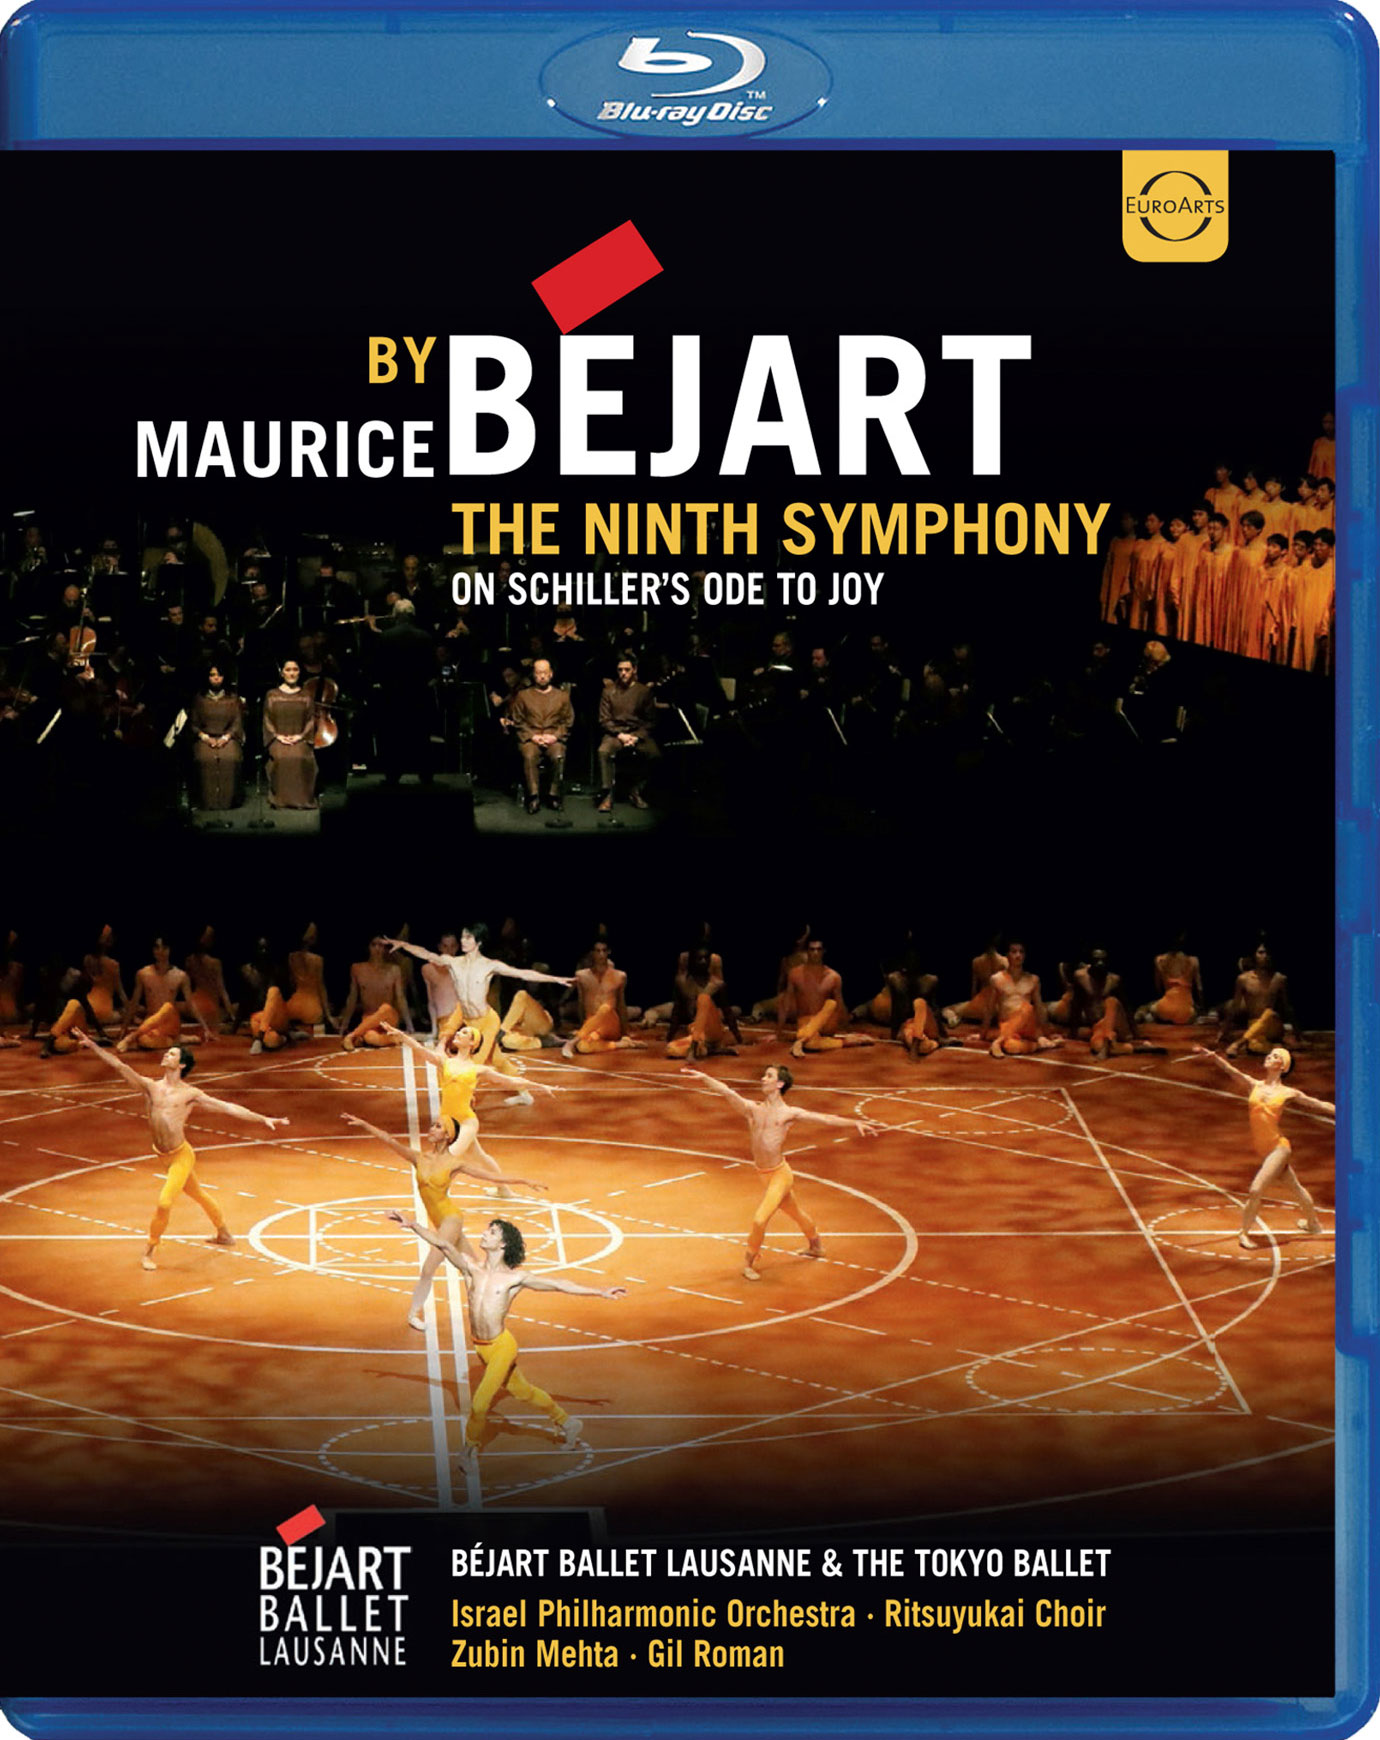 Maurice Béjart: The Ninth Symphony on Schiller's Ode to Joy